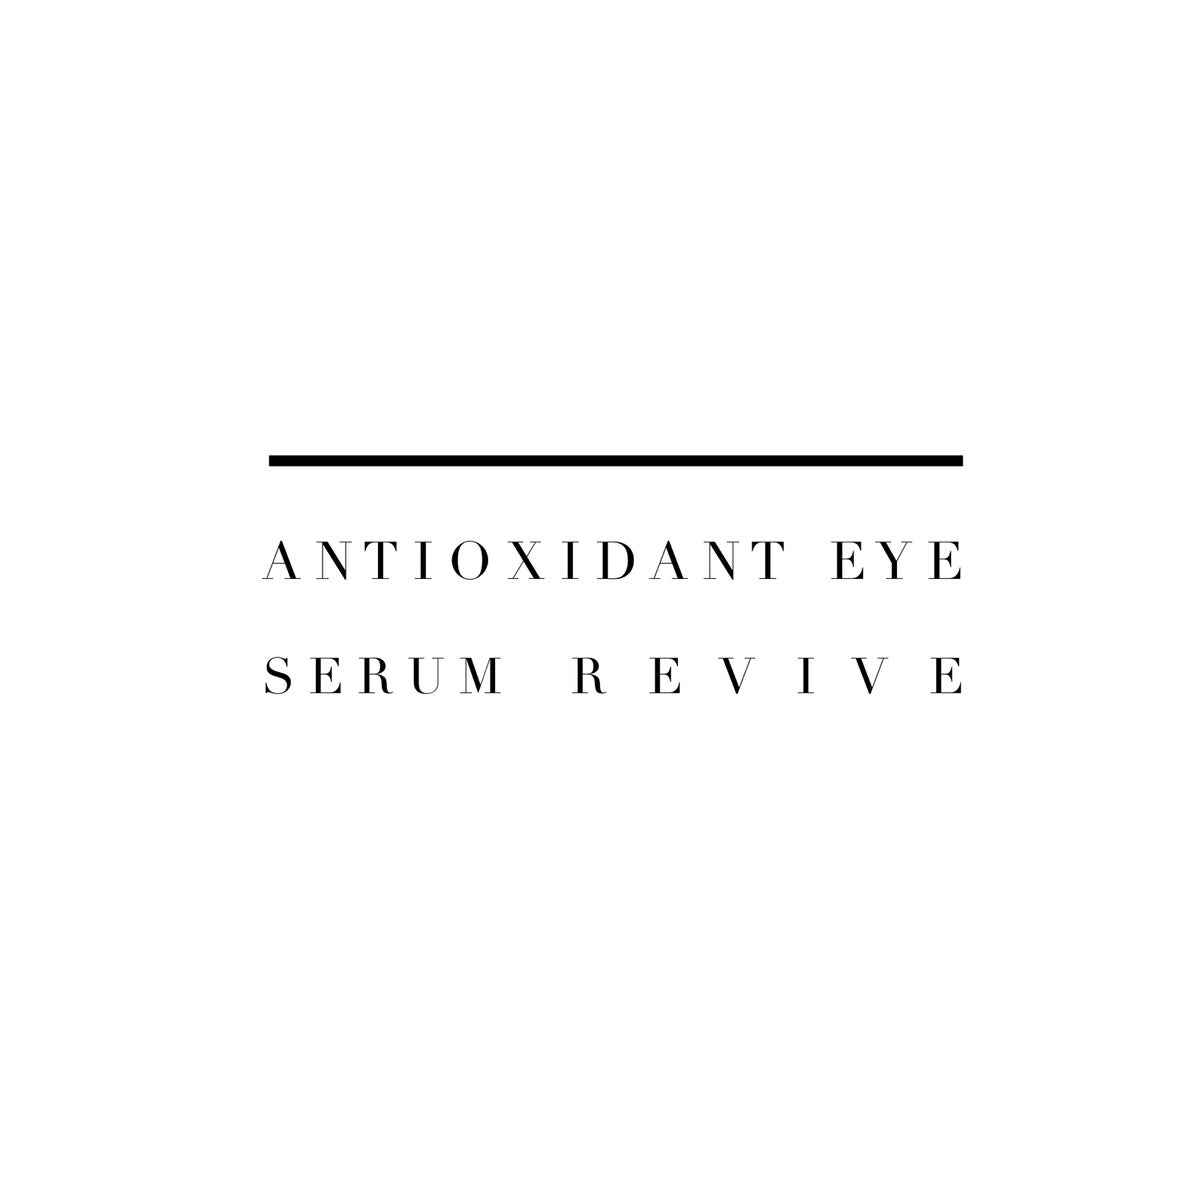 Image of Antioxidant Eye Serum REVIVE